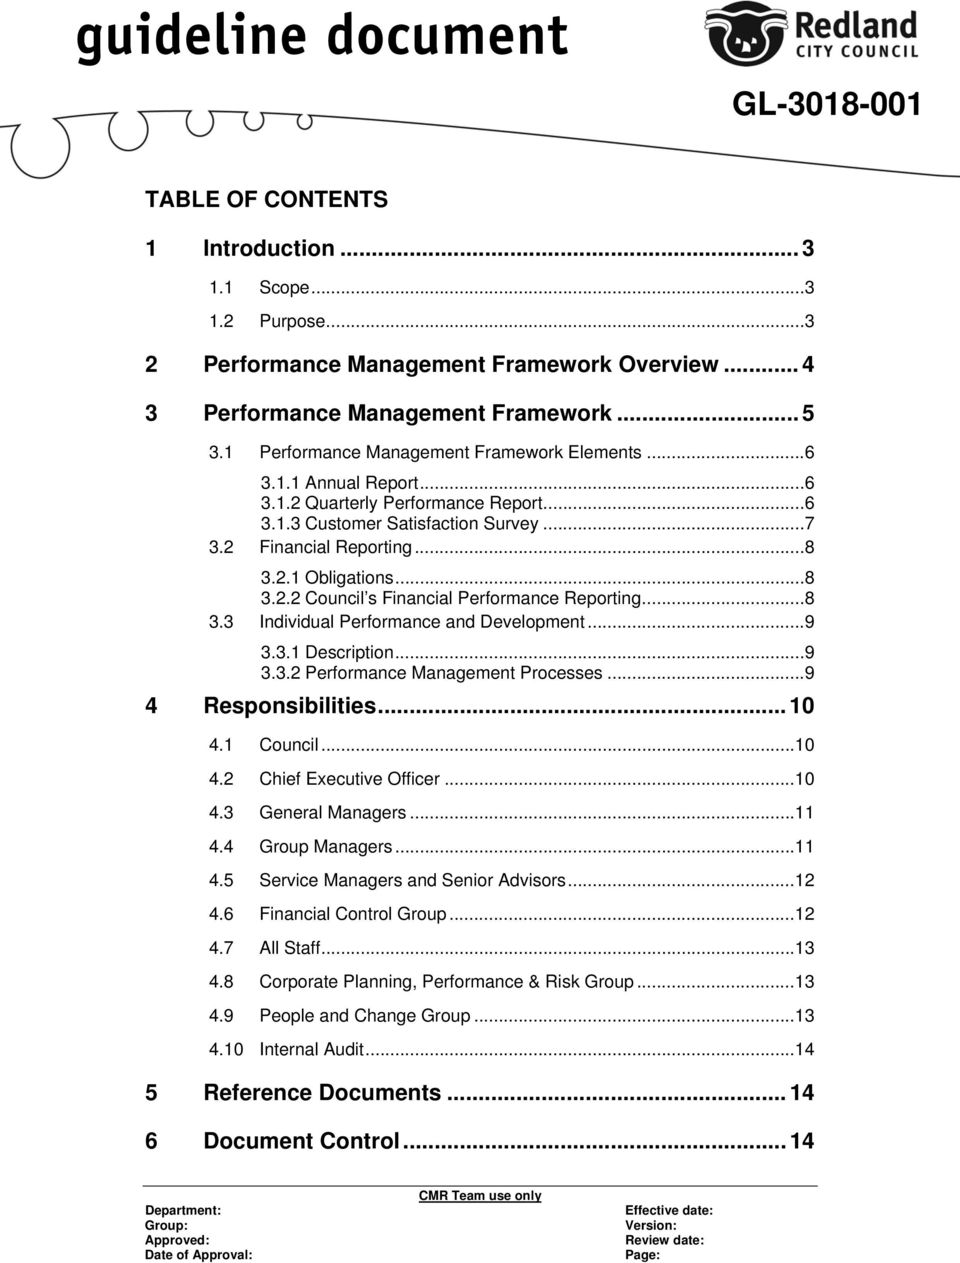 .. 8 3.2.2 Council s Financial Performance Reporting... 8 3.3 Individual Performance and Development... 9 3.3.1 Description... 9 3.3.2 Performance Management Processes... 9 4 Responsibilities... 10 4.